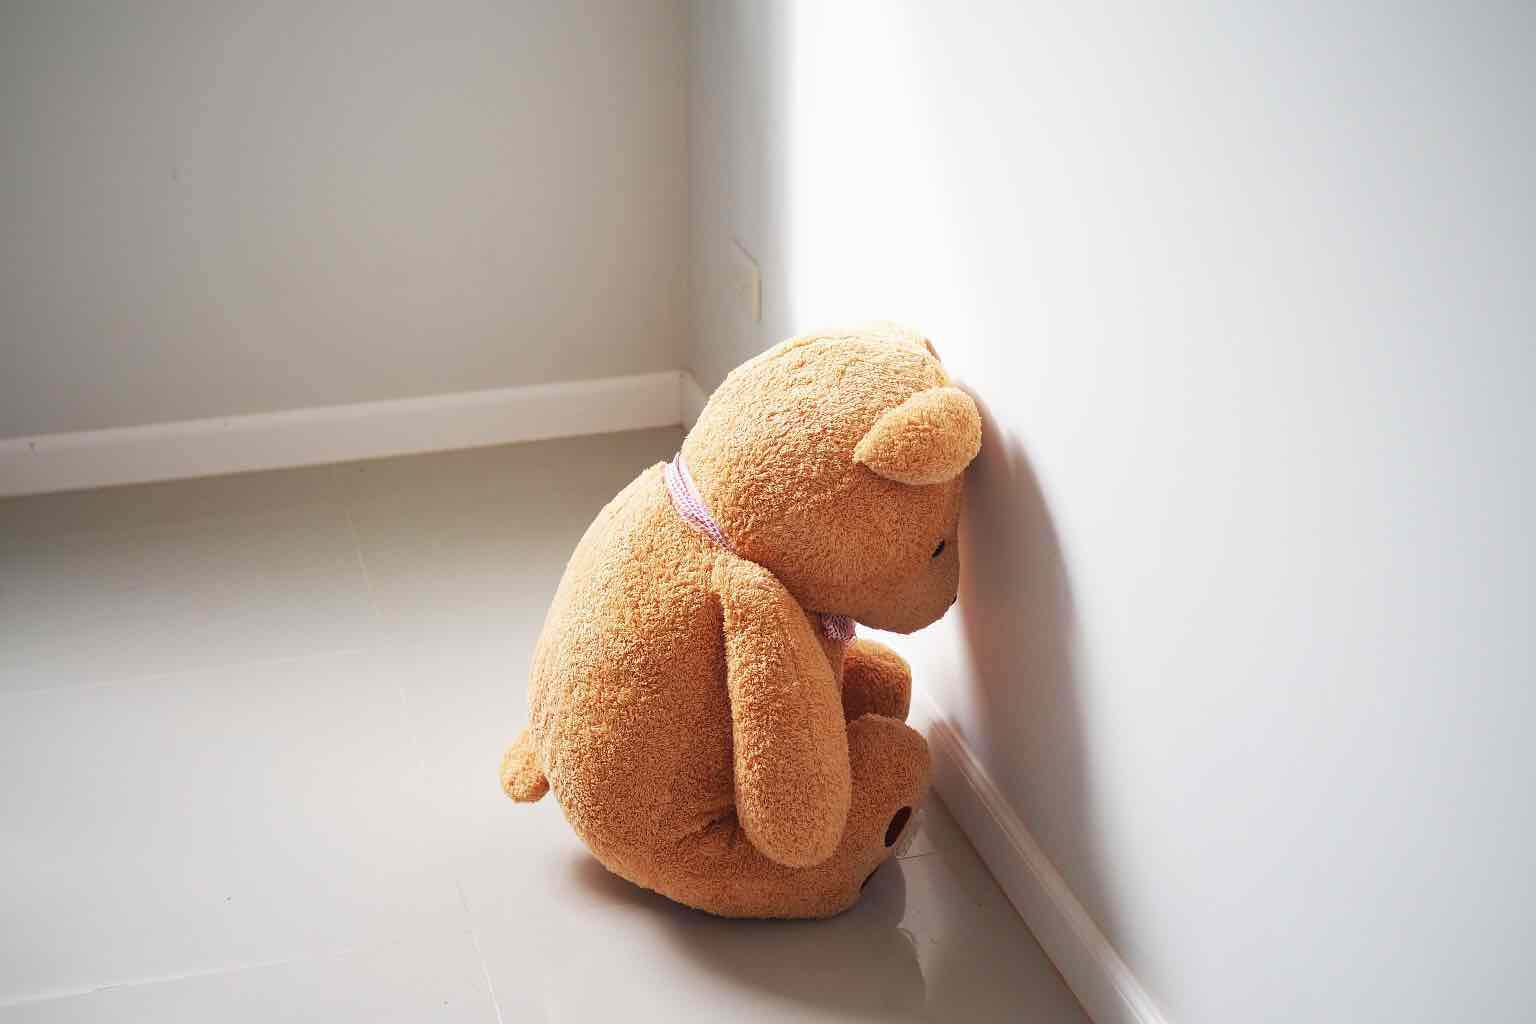 A cuddly toy teddy bear sitting leaning against the wall of the house alone, look sad and disappointed.